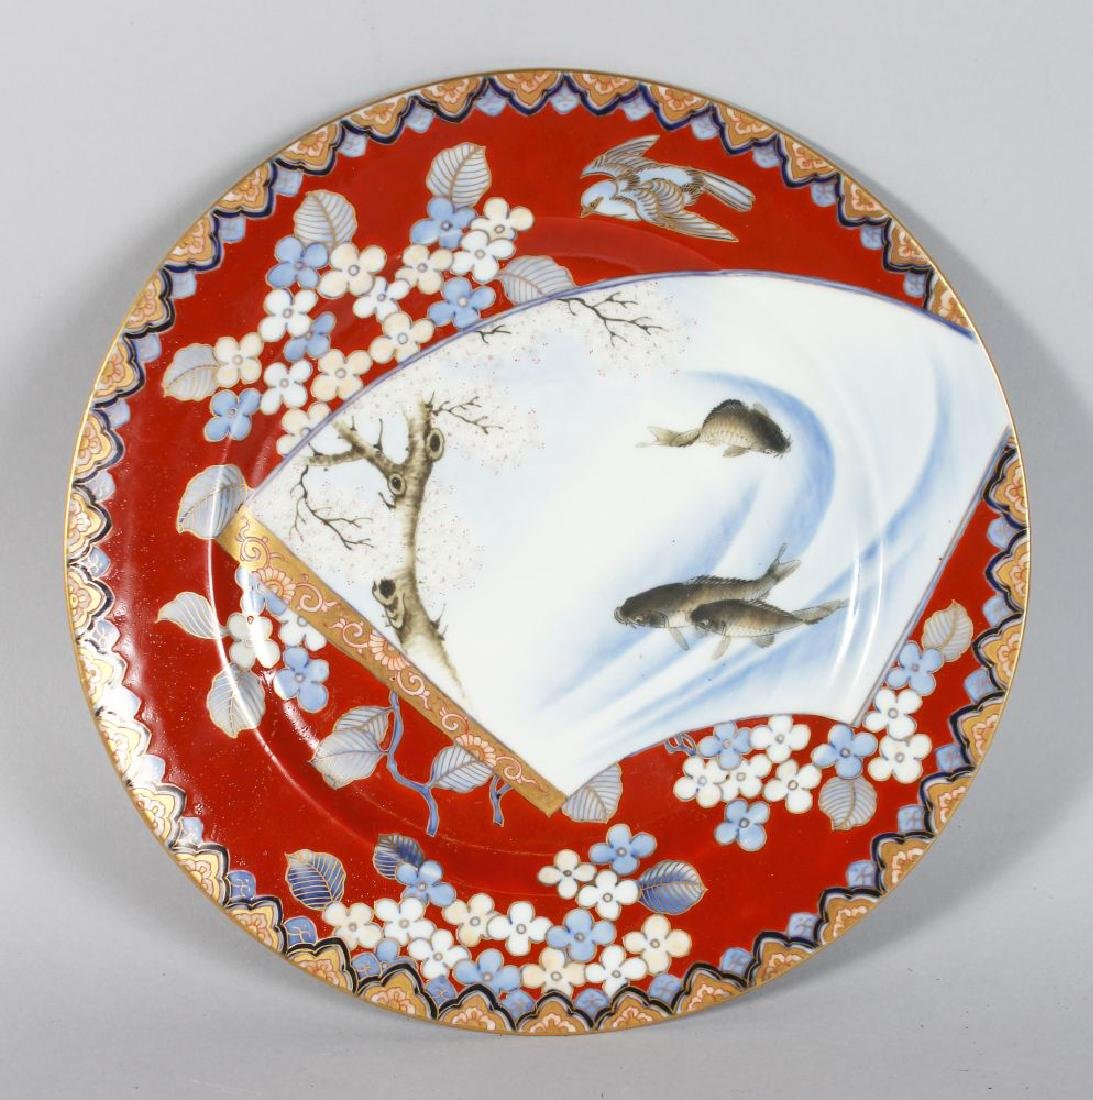 A JAPANESE PORCELAIN CIRCULAR PLATE, painted with carp